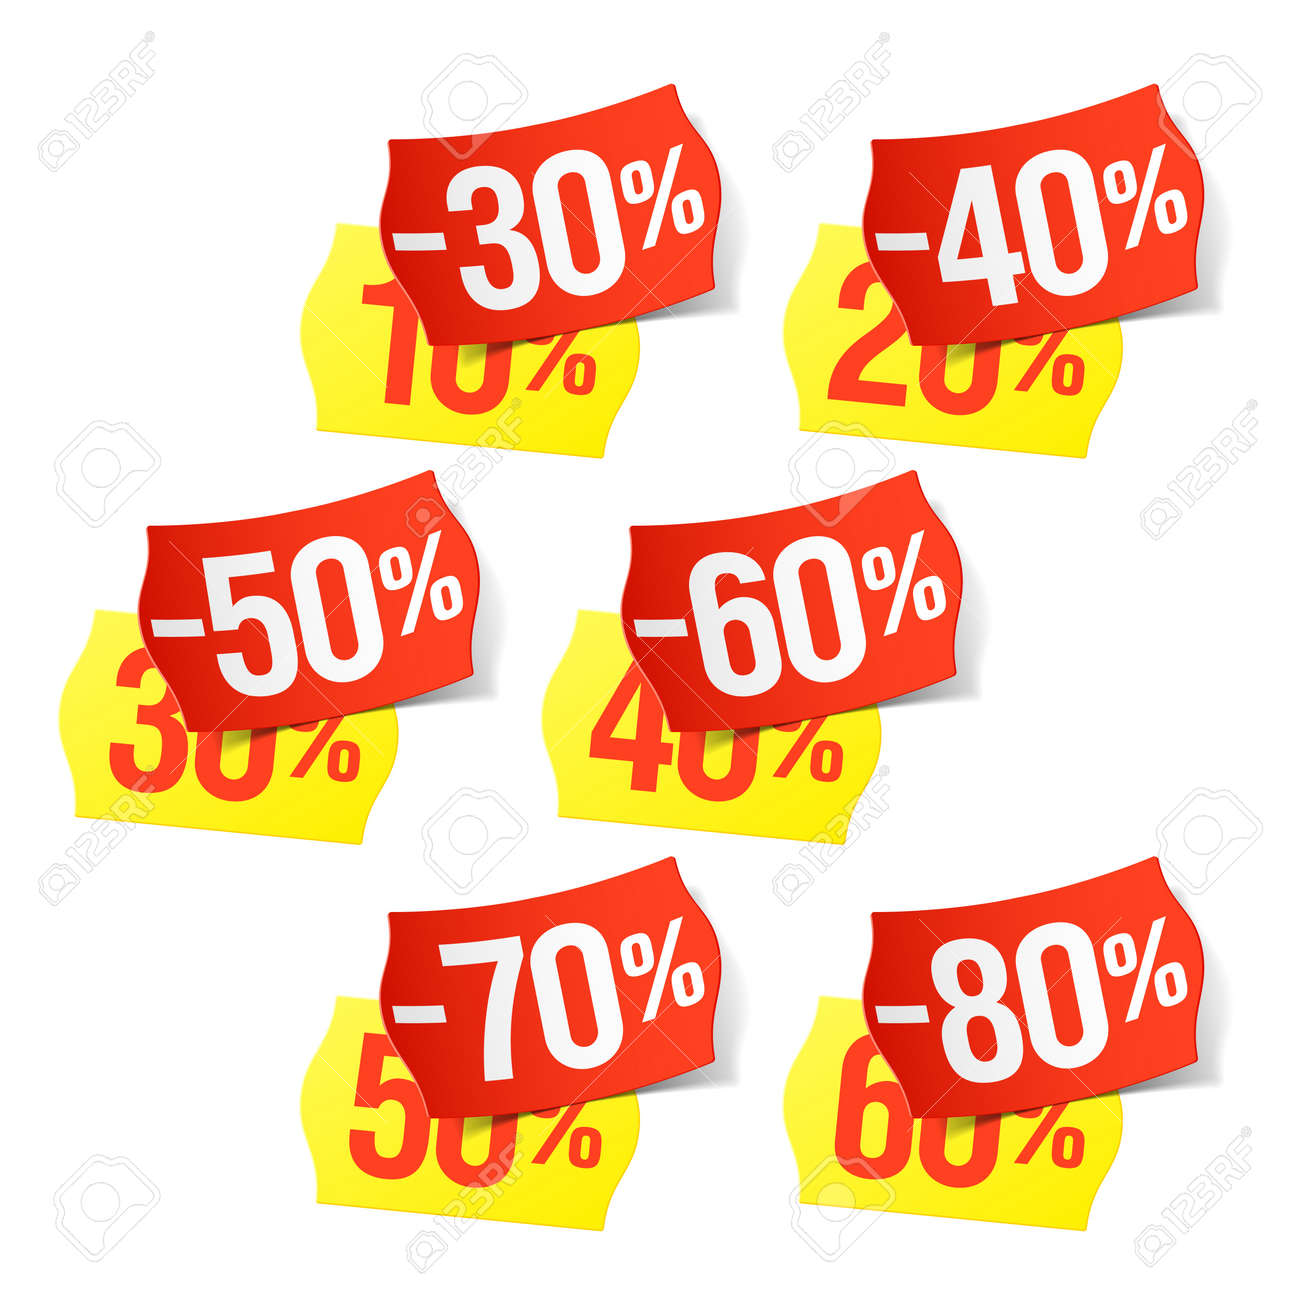 More discounts - price tags - 9882474